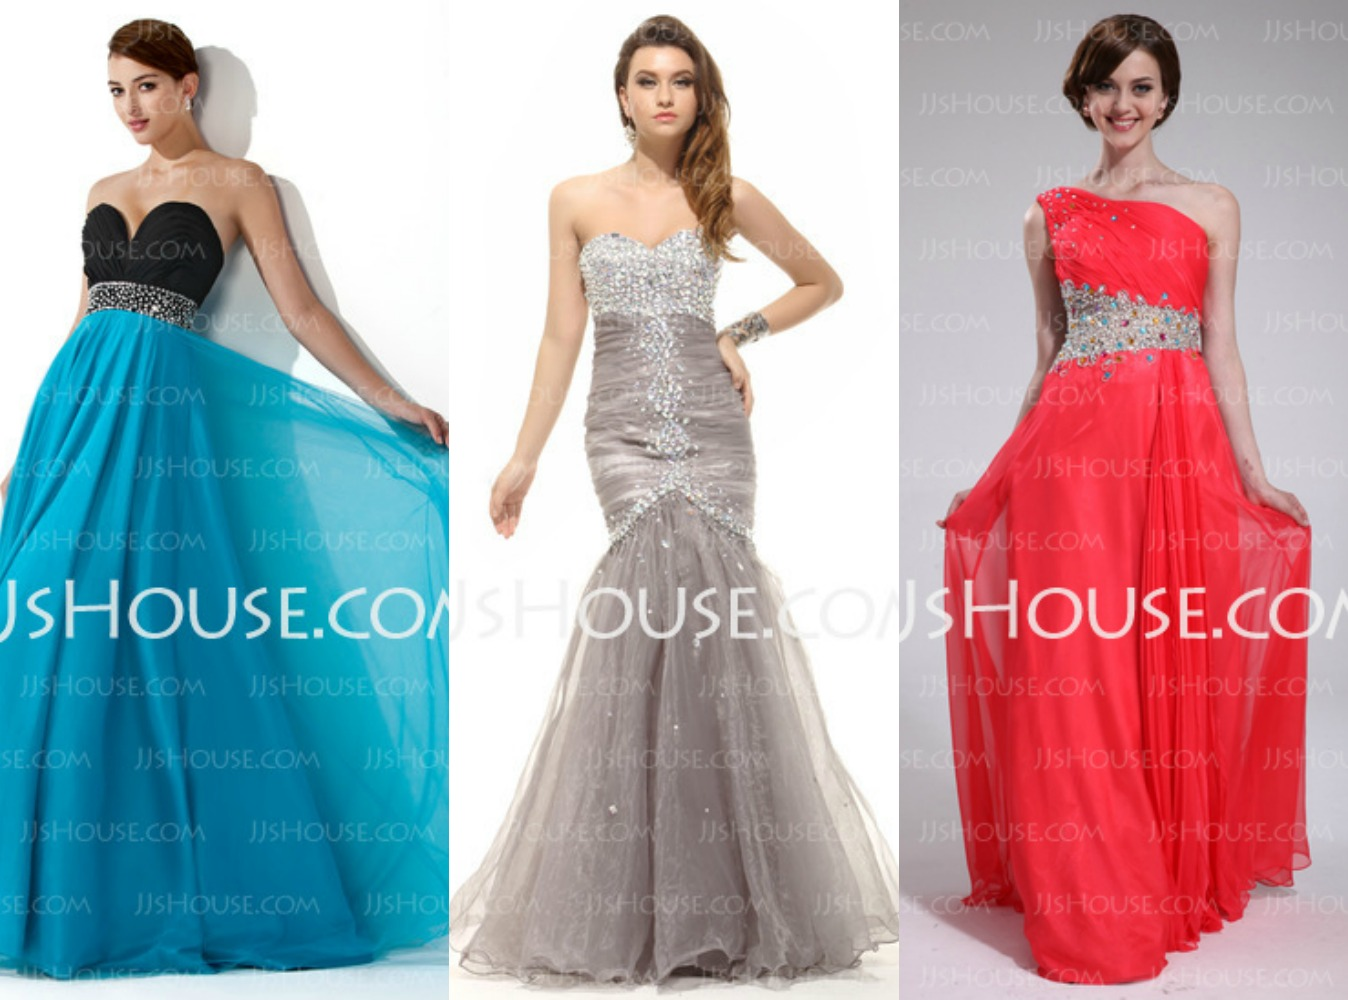 Gorgeous and Modest Prom Dresses from JJsHouse